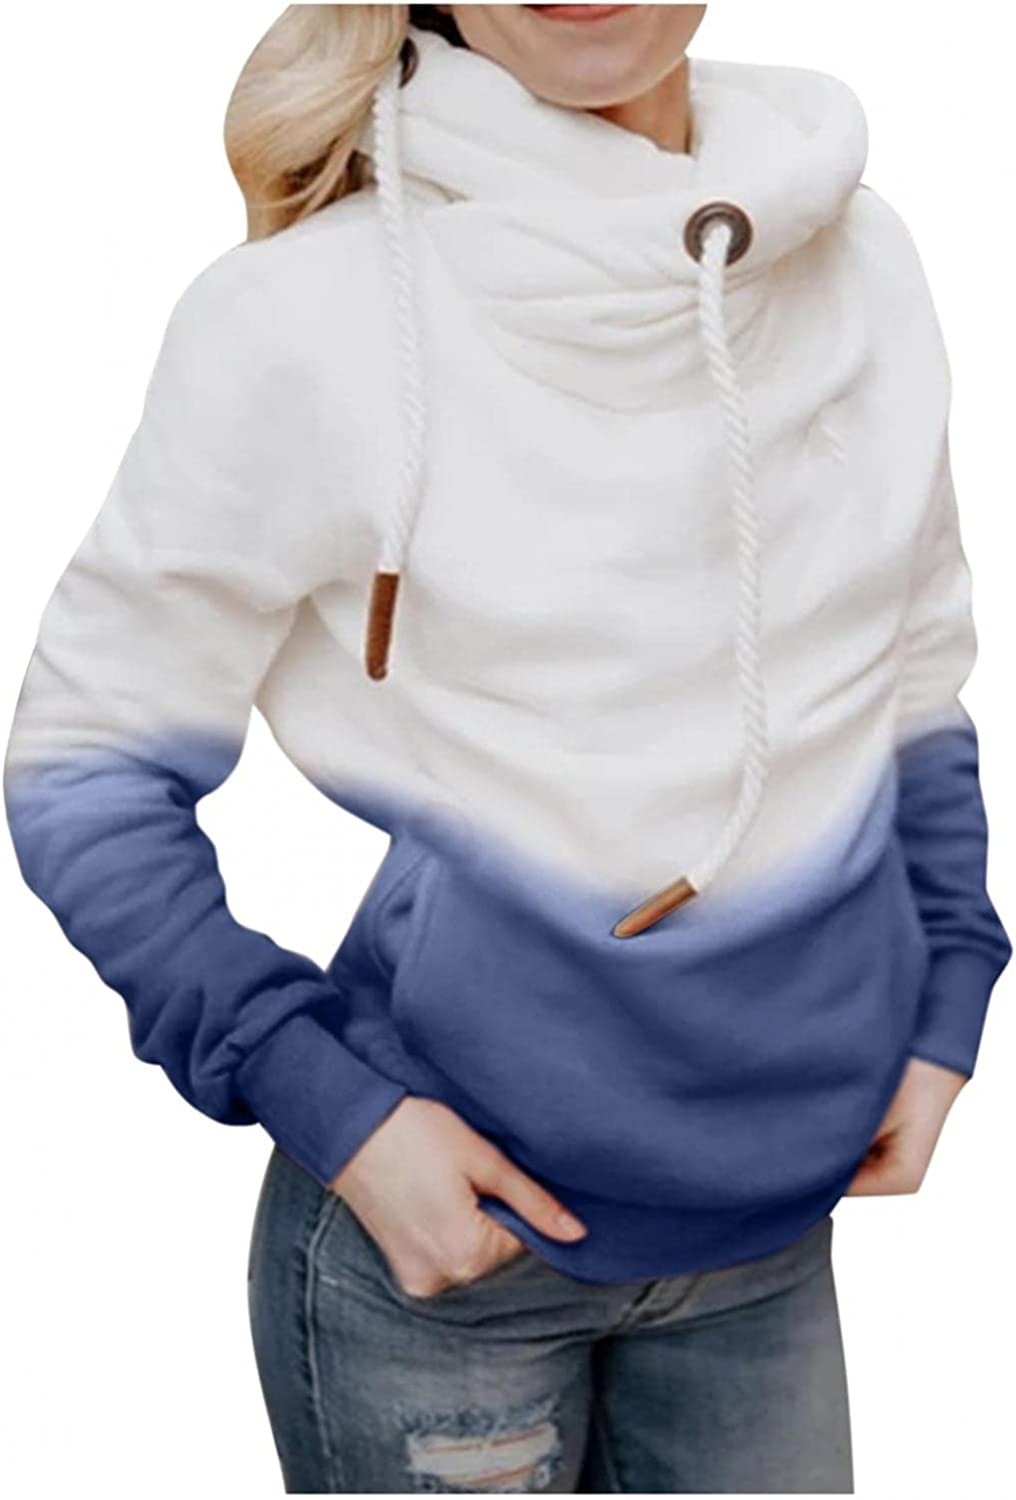 Womens Hoodies Pullover Pullover Sweatshirts Drawstring Hooded Casual Cowl Neck Long Sleeve Colorblock Tops with Pockets